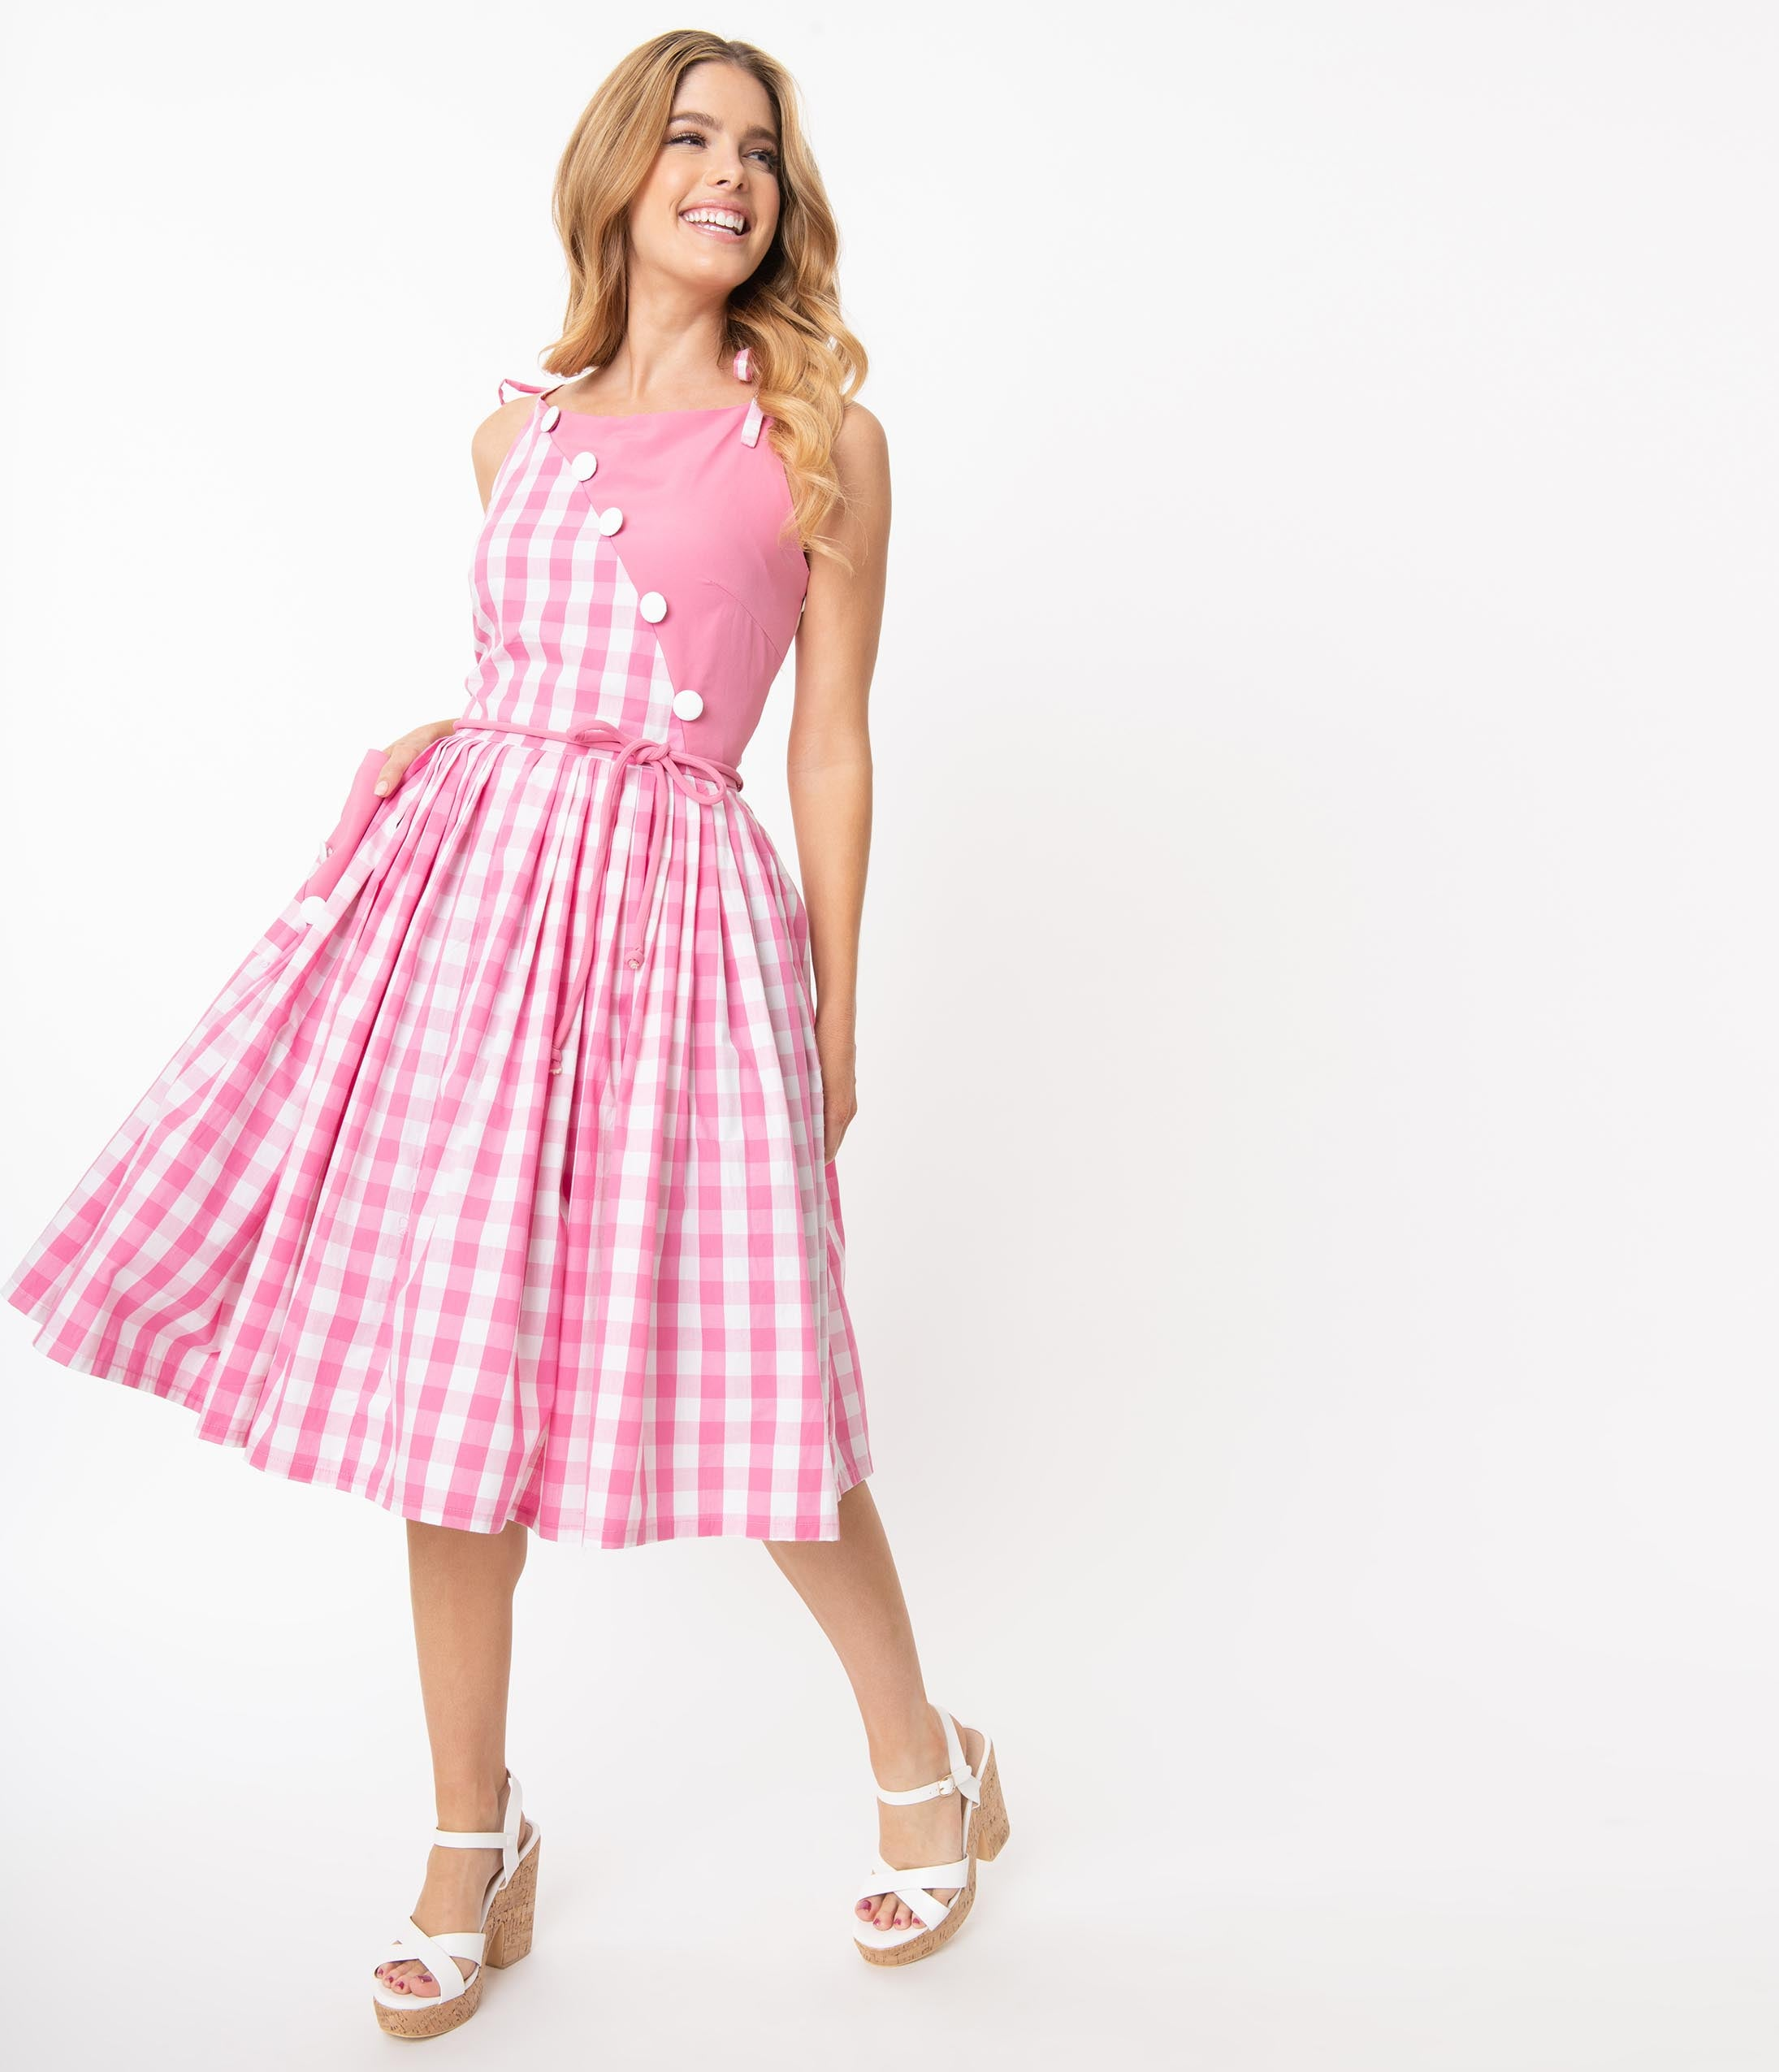 500 Vintage Style Dresses for Sale | Vintage Inspired Dresses Unique Vintage 1950S Light Pink  White Gingham Hamilton Swing Dress $98.00 AT vintagedancer.com